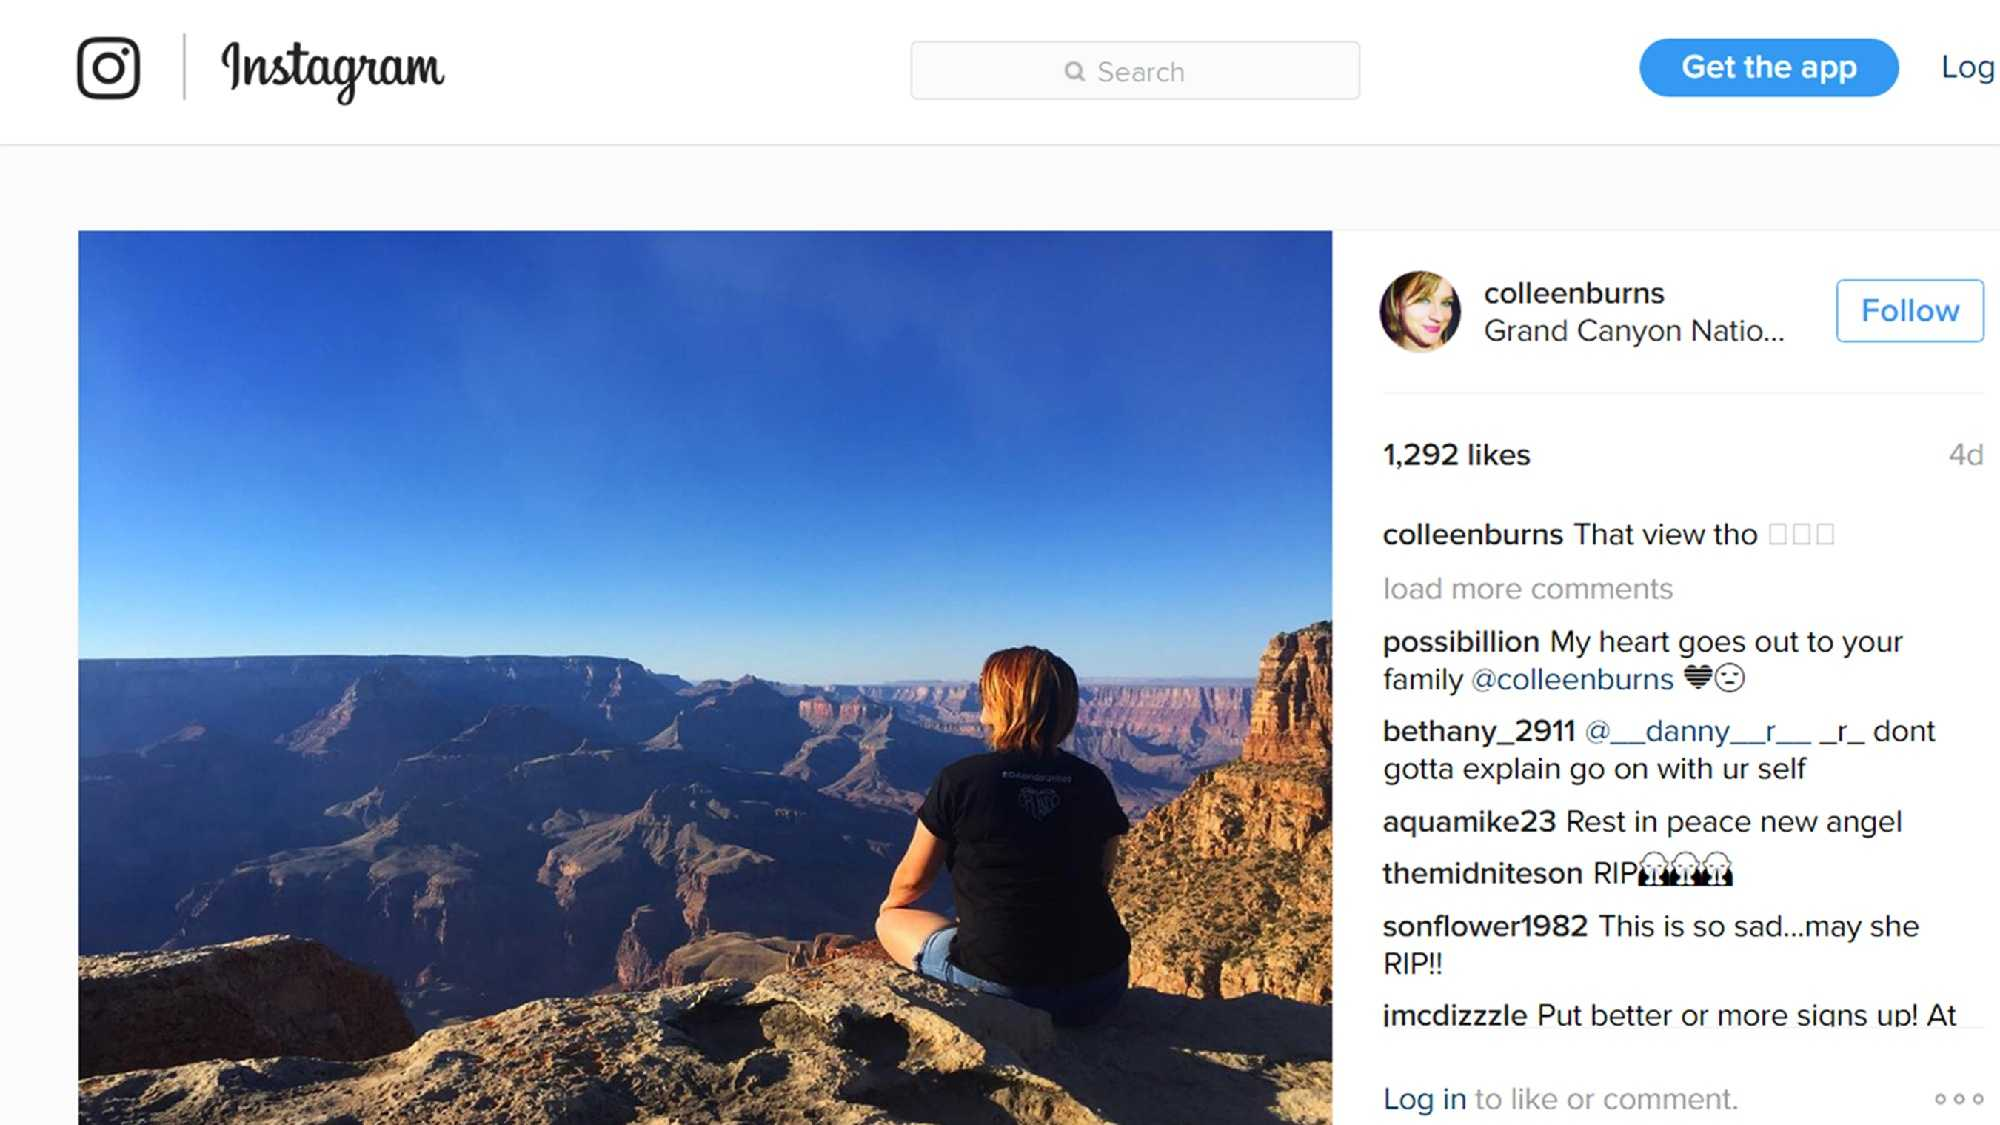 A few hours before she died, Colleen Burns uploaded this photo on Instagram of herself at the Grand Canyon.